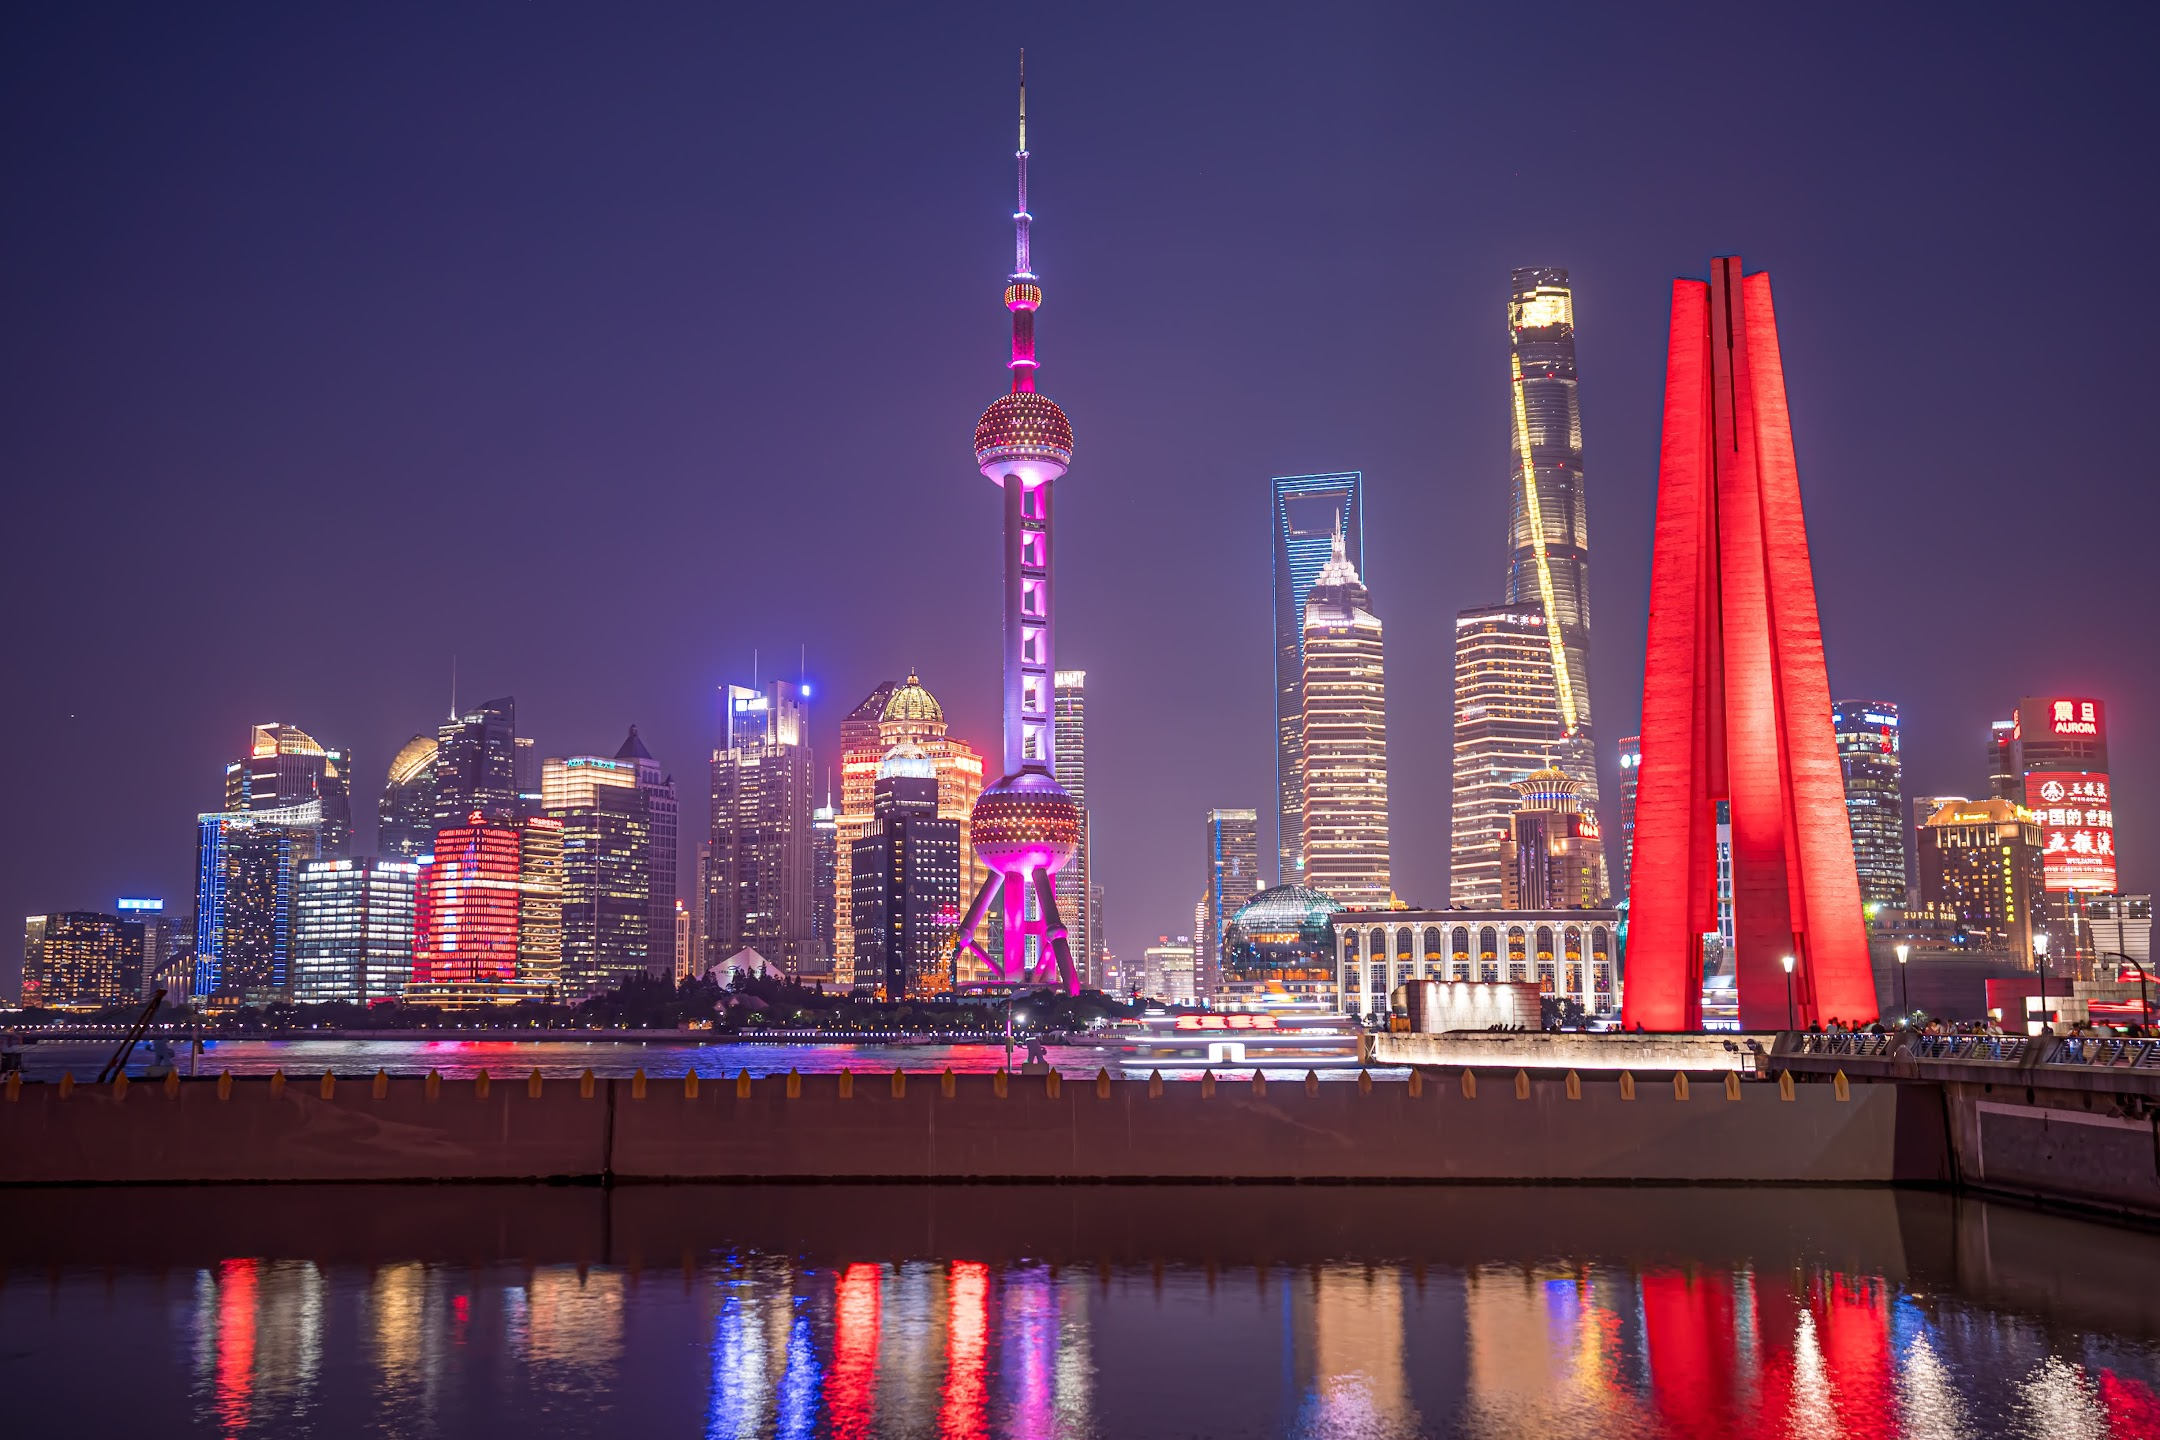 Shanghai Waitan (The Bund) Pudong1